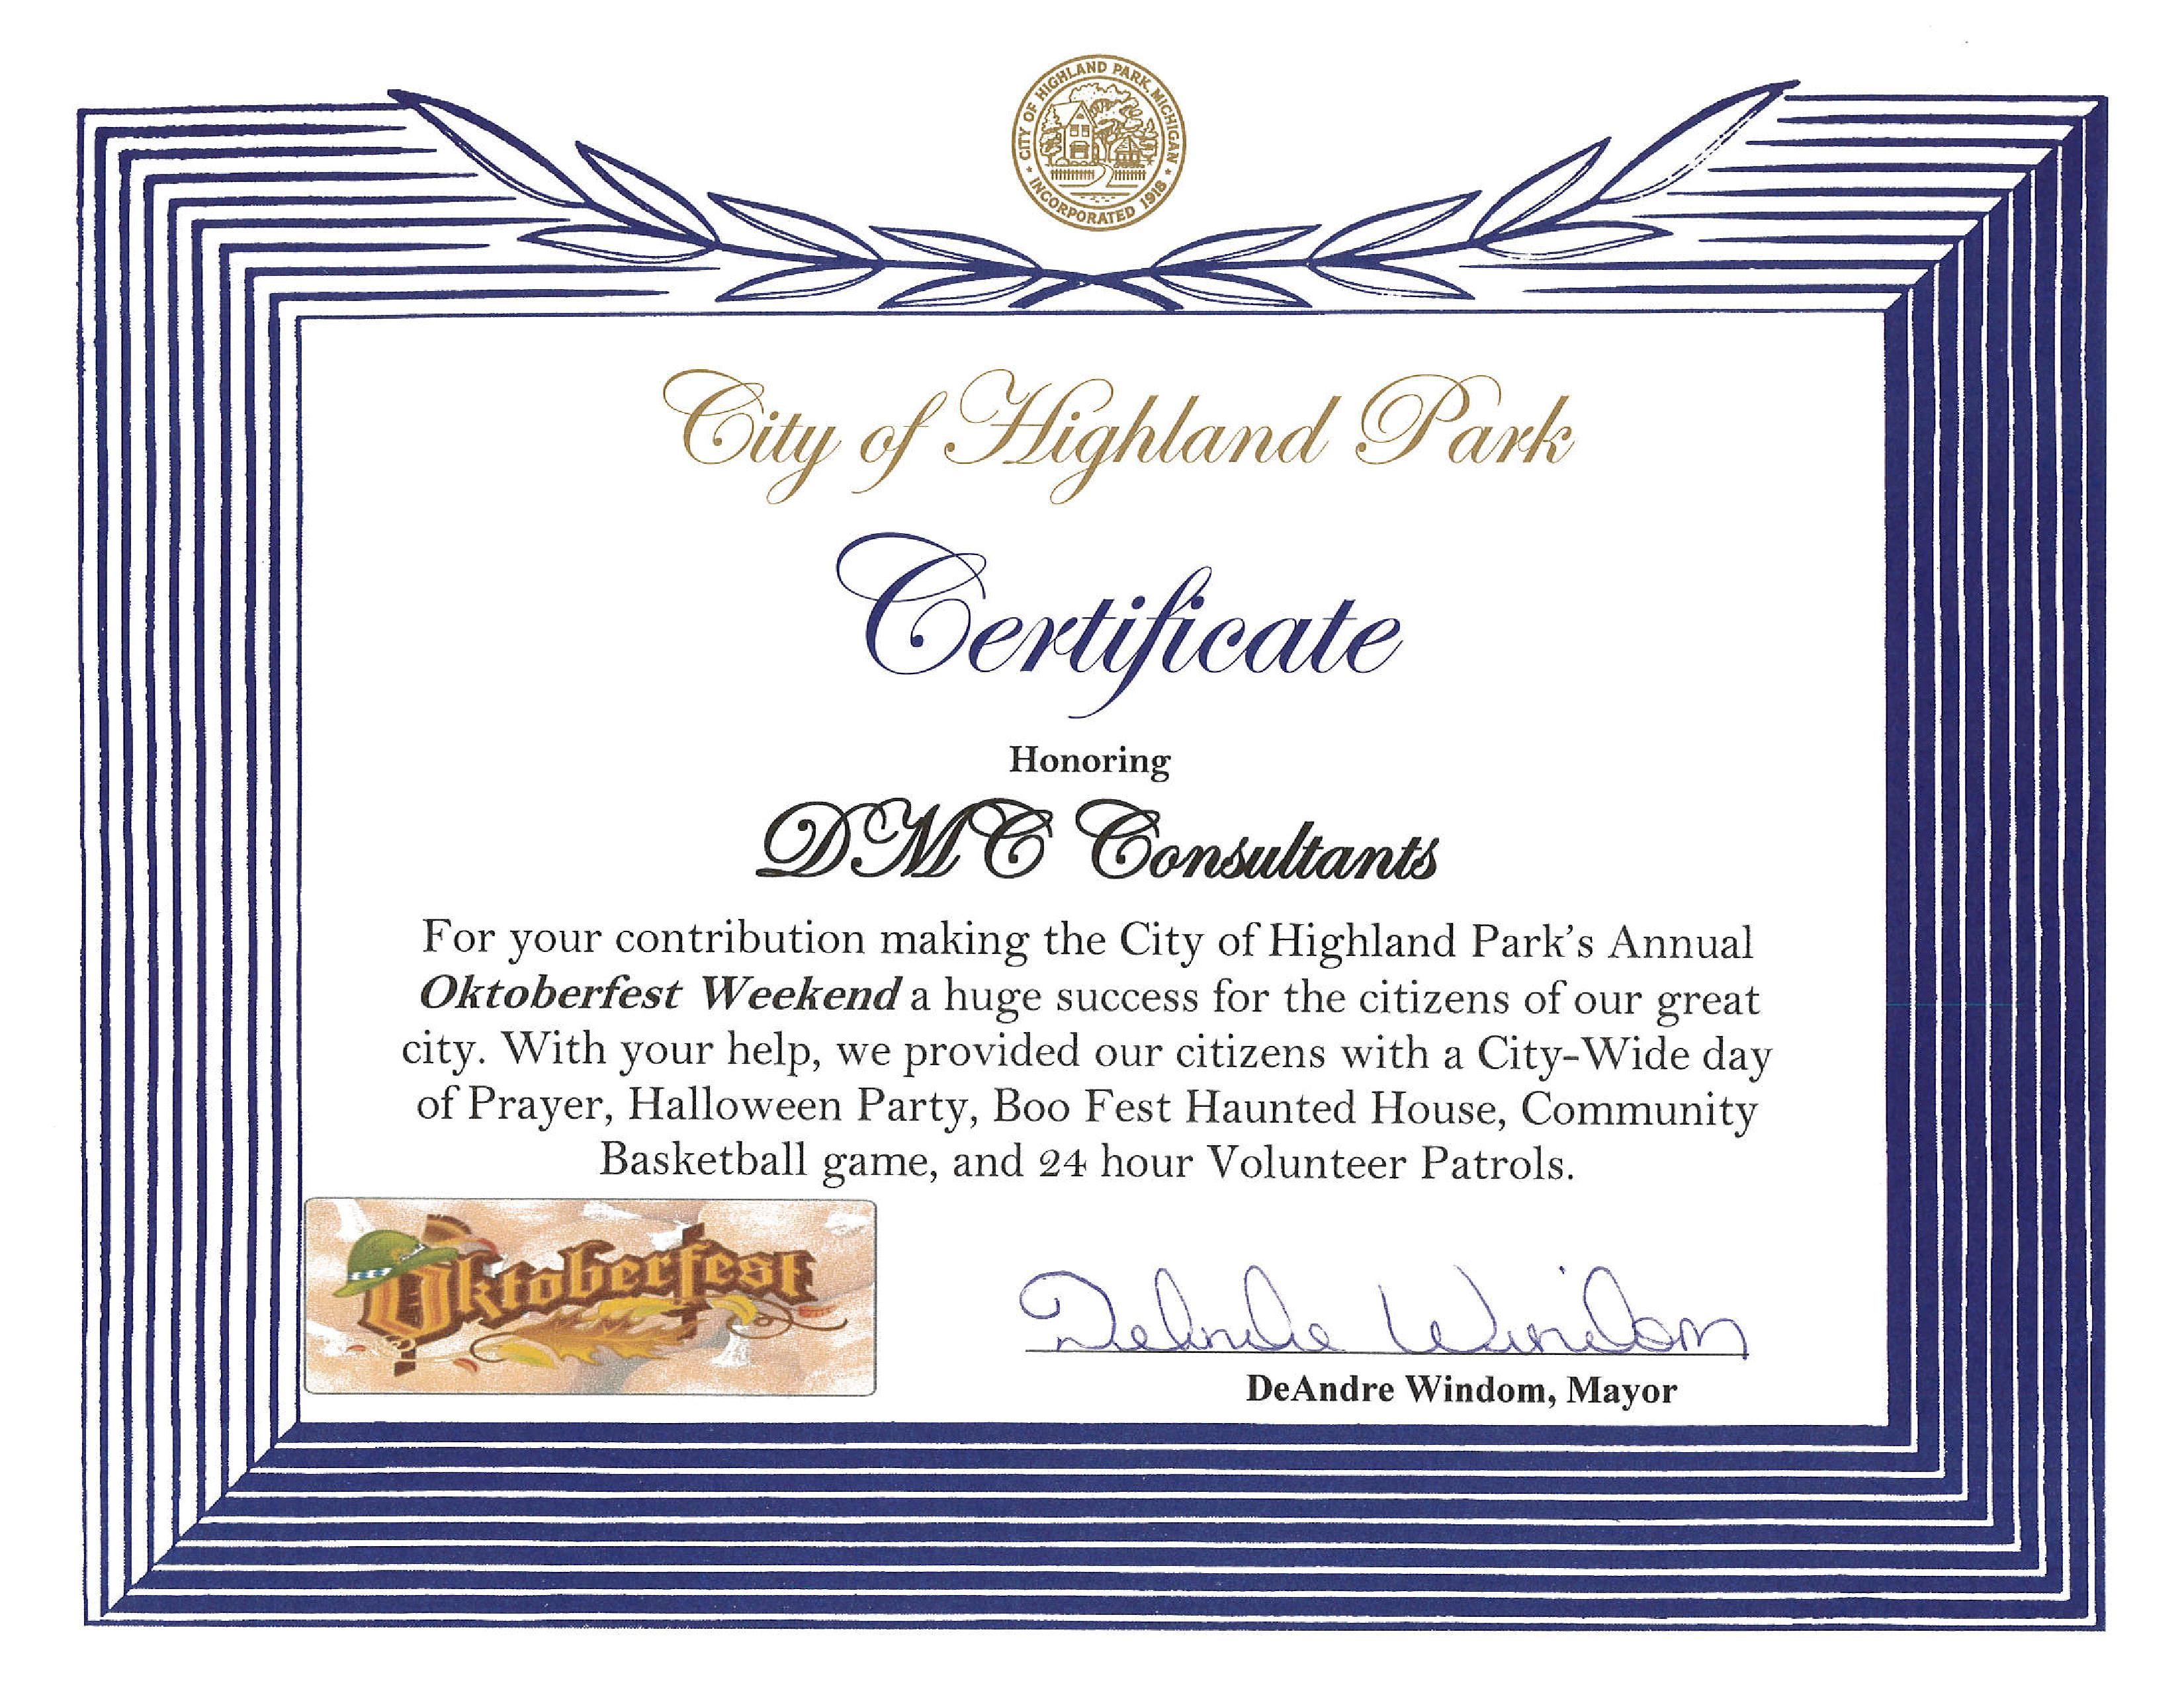 Dmc group usa dmc awarded certificate of appreciation by the city of highland park yadclub Image collections